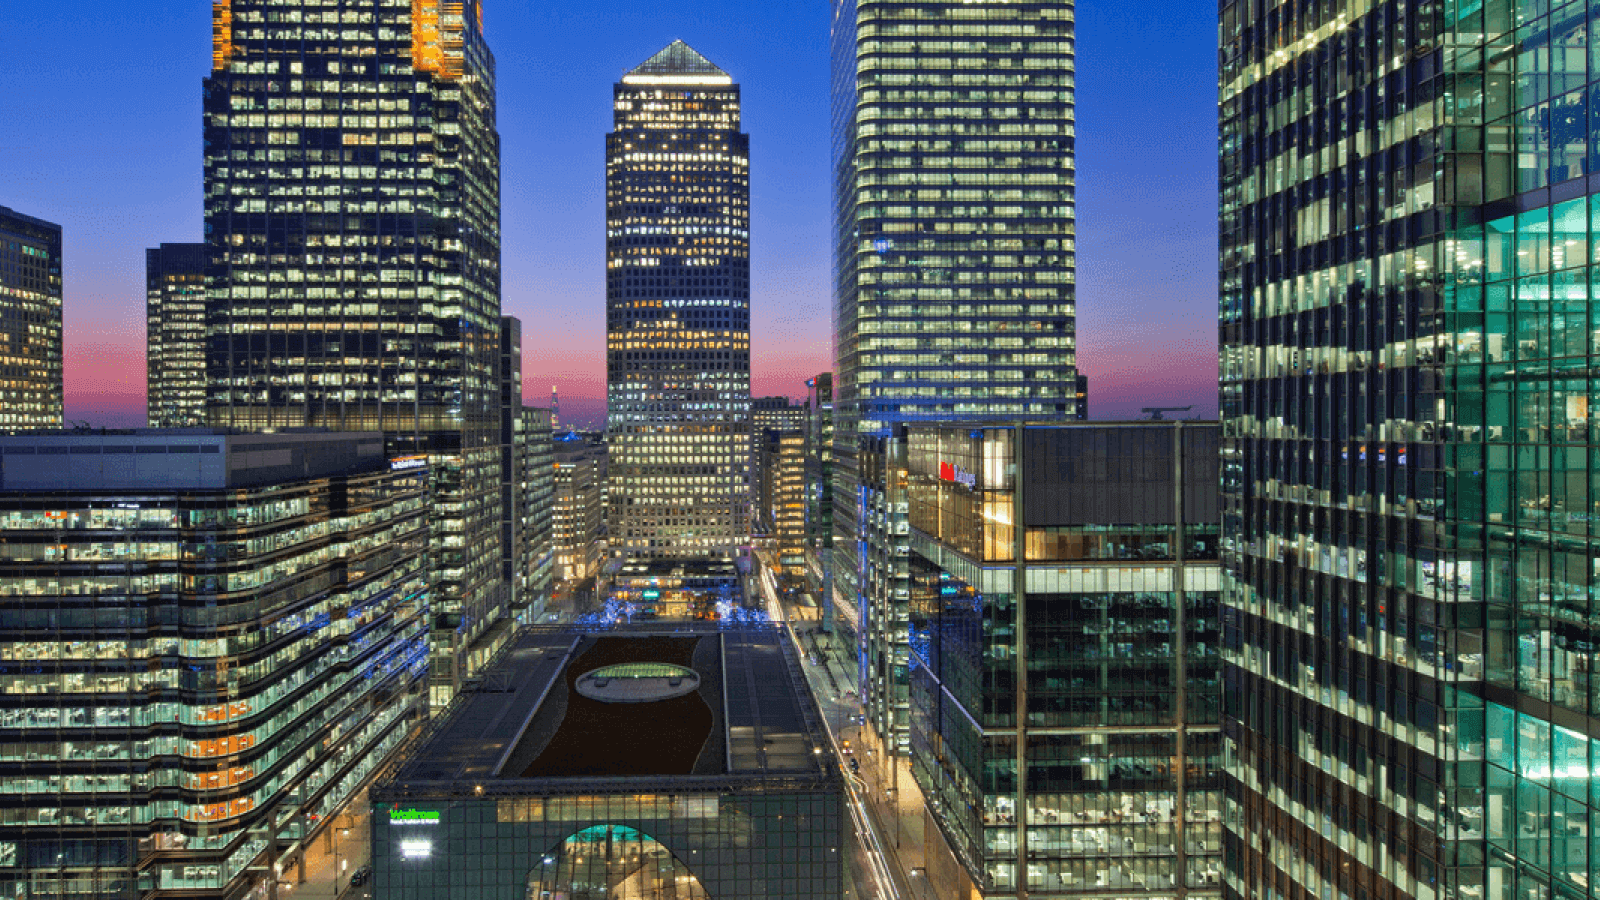 Sunset over London's Canary Wharf skyline